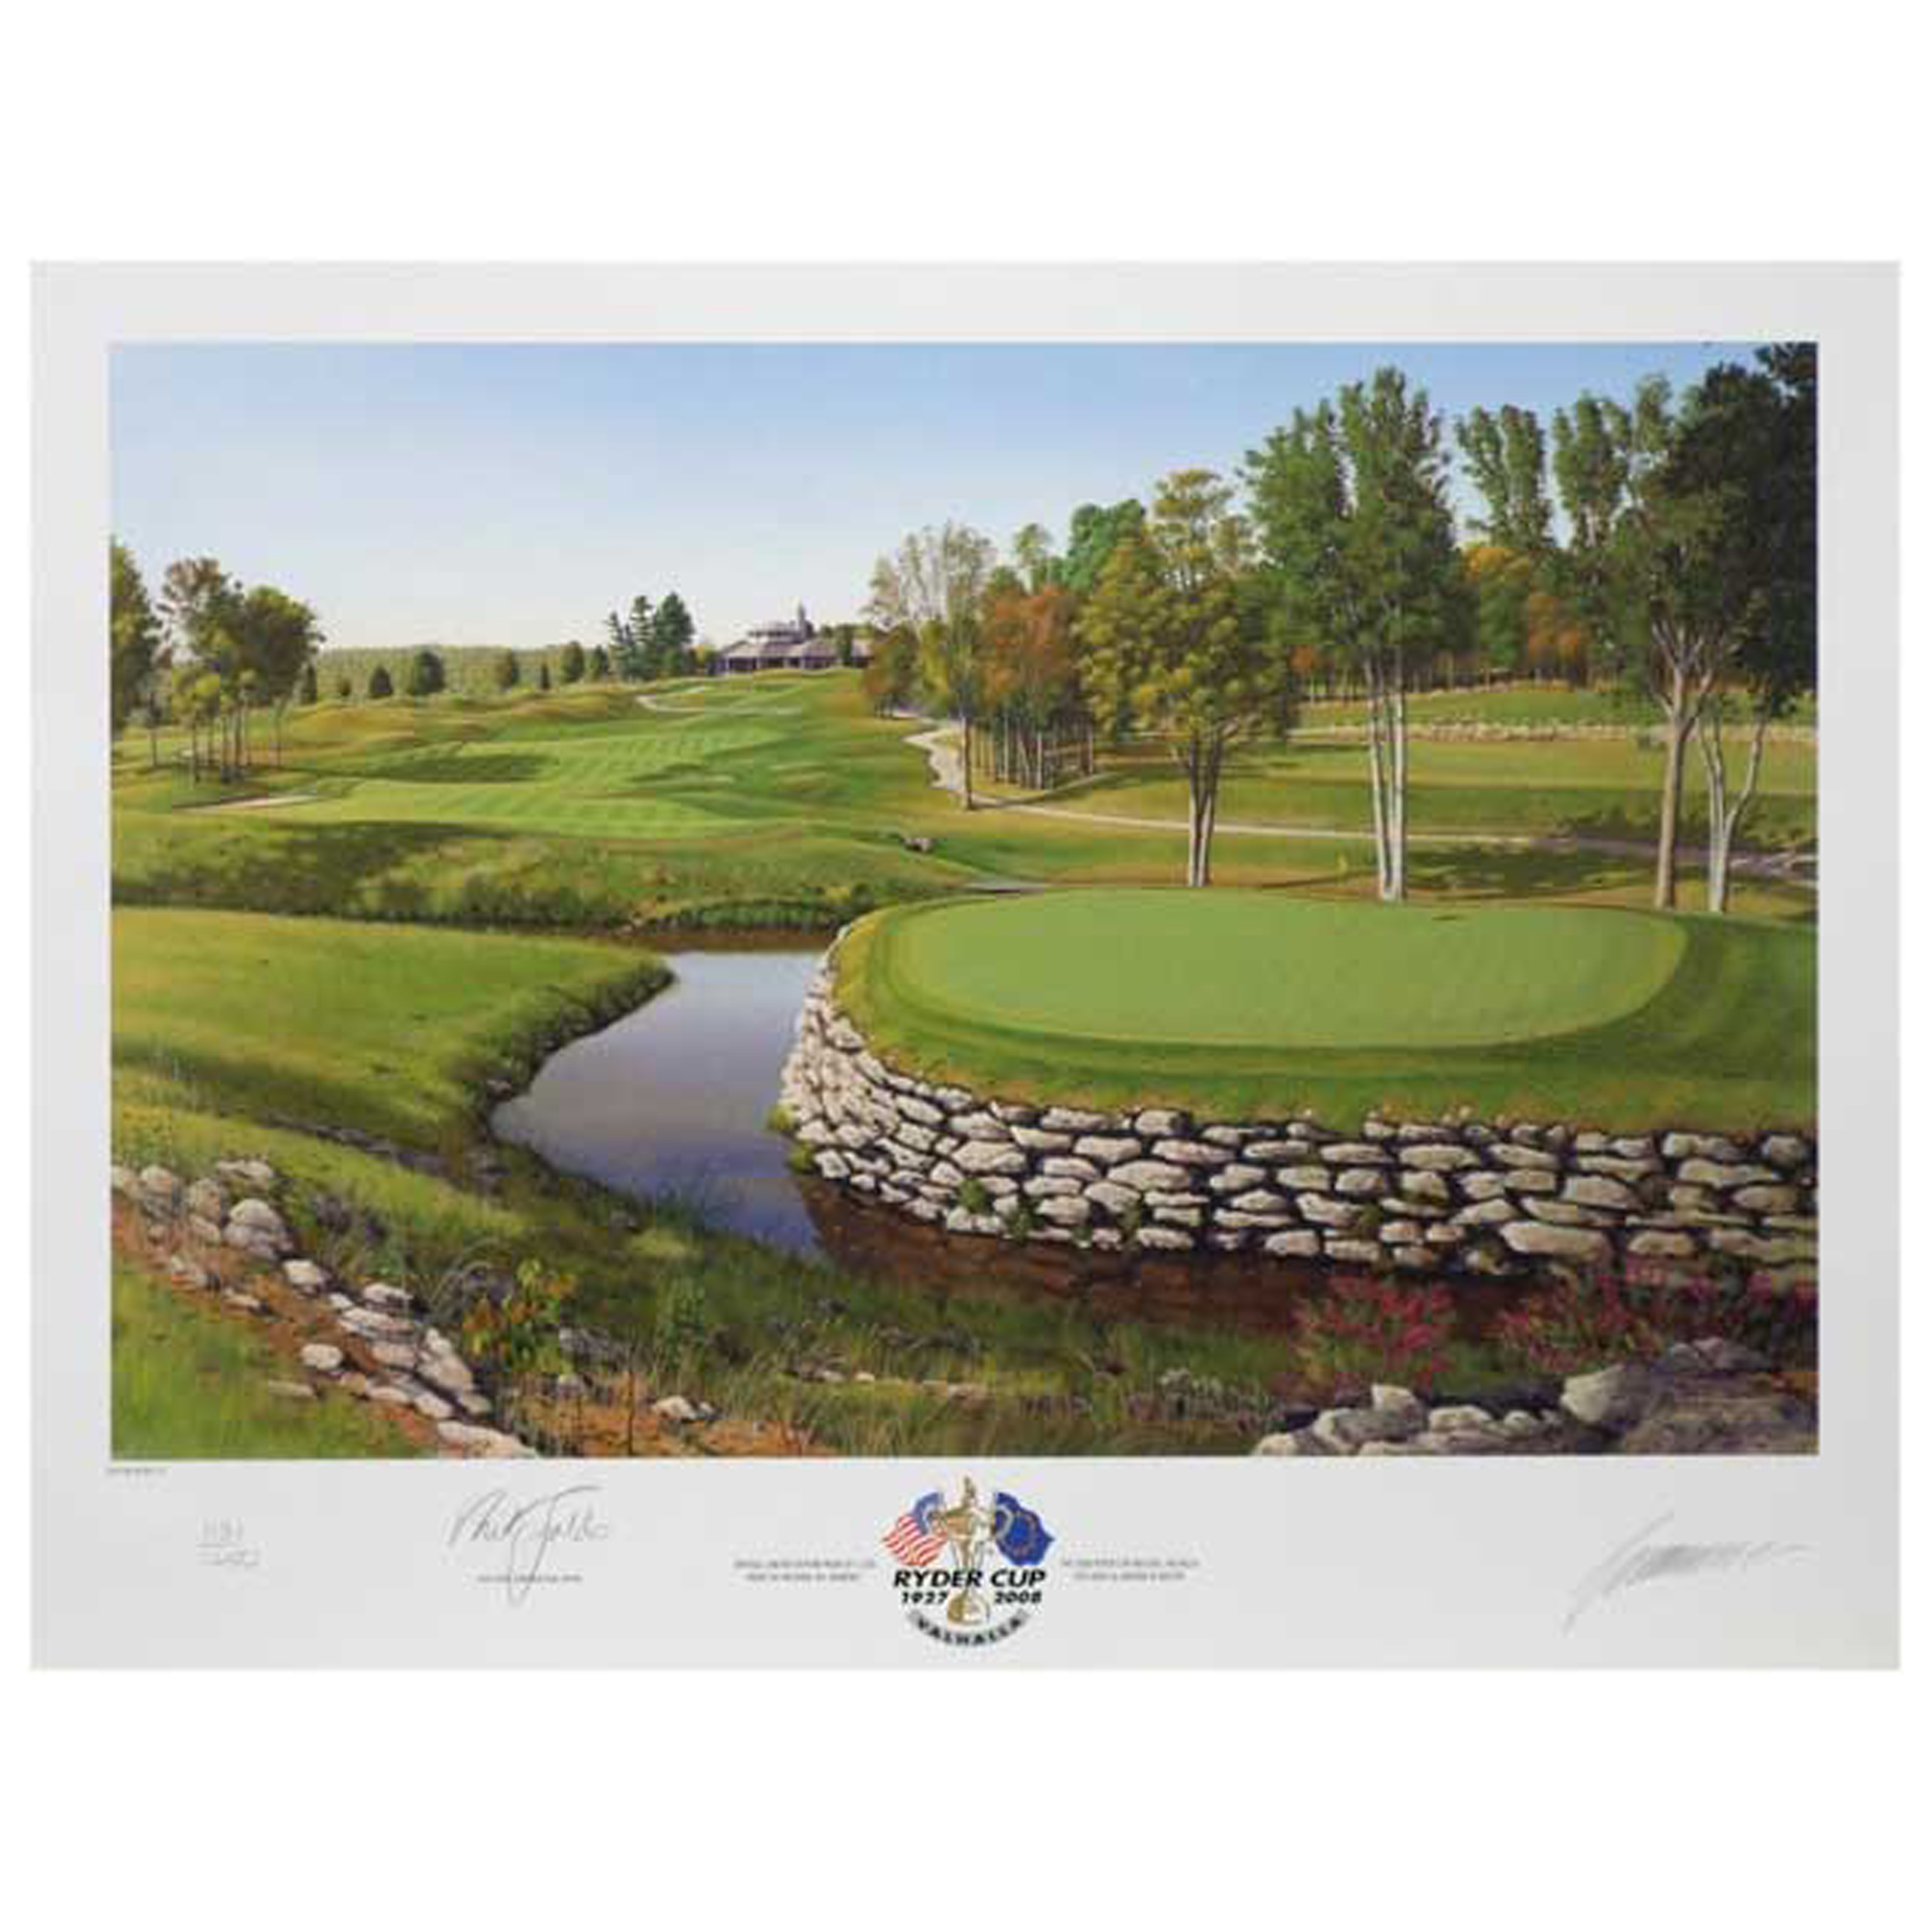 The Ryder Cup Valhalla 2008 13th Hole Limited Edition Print